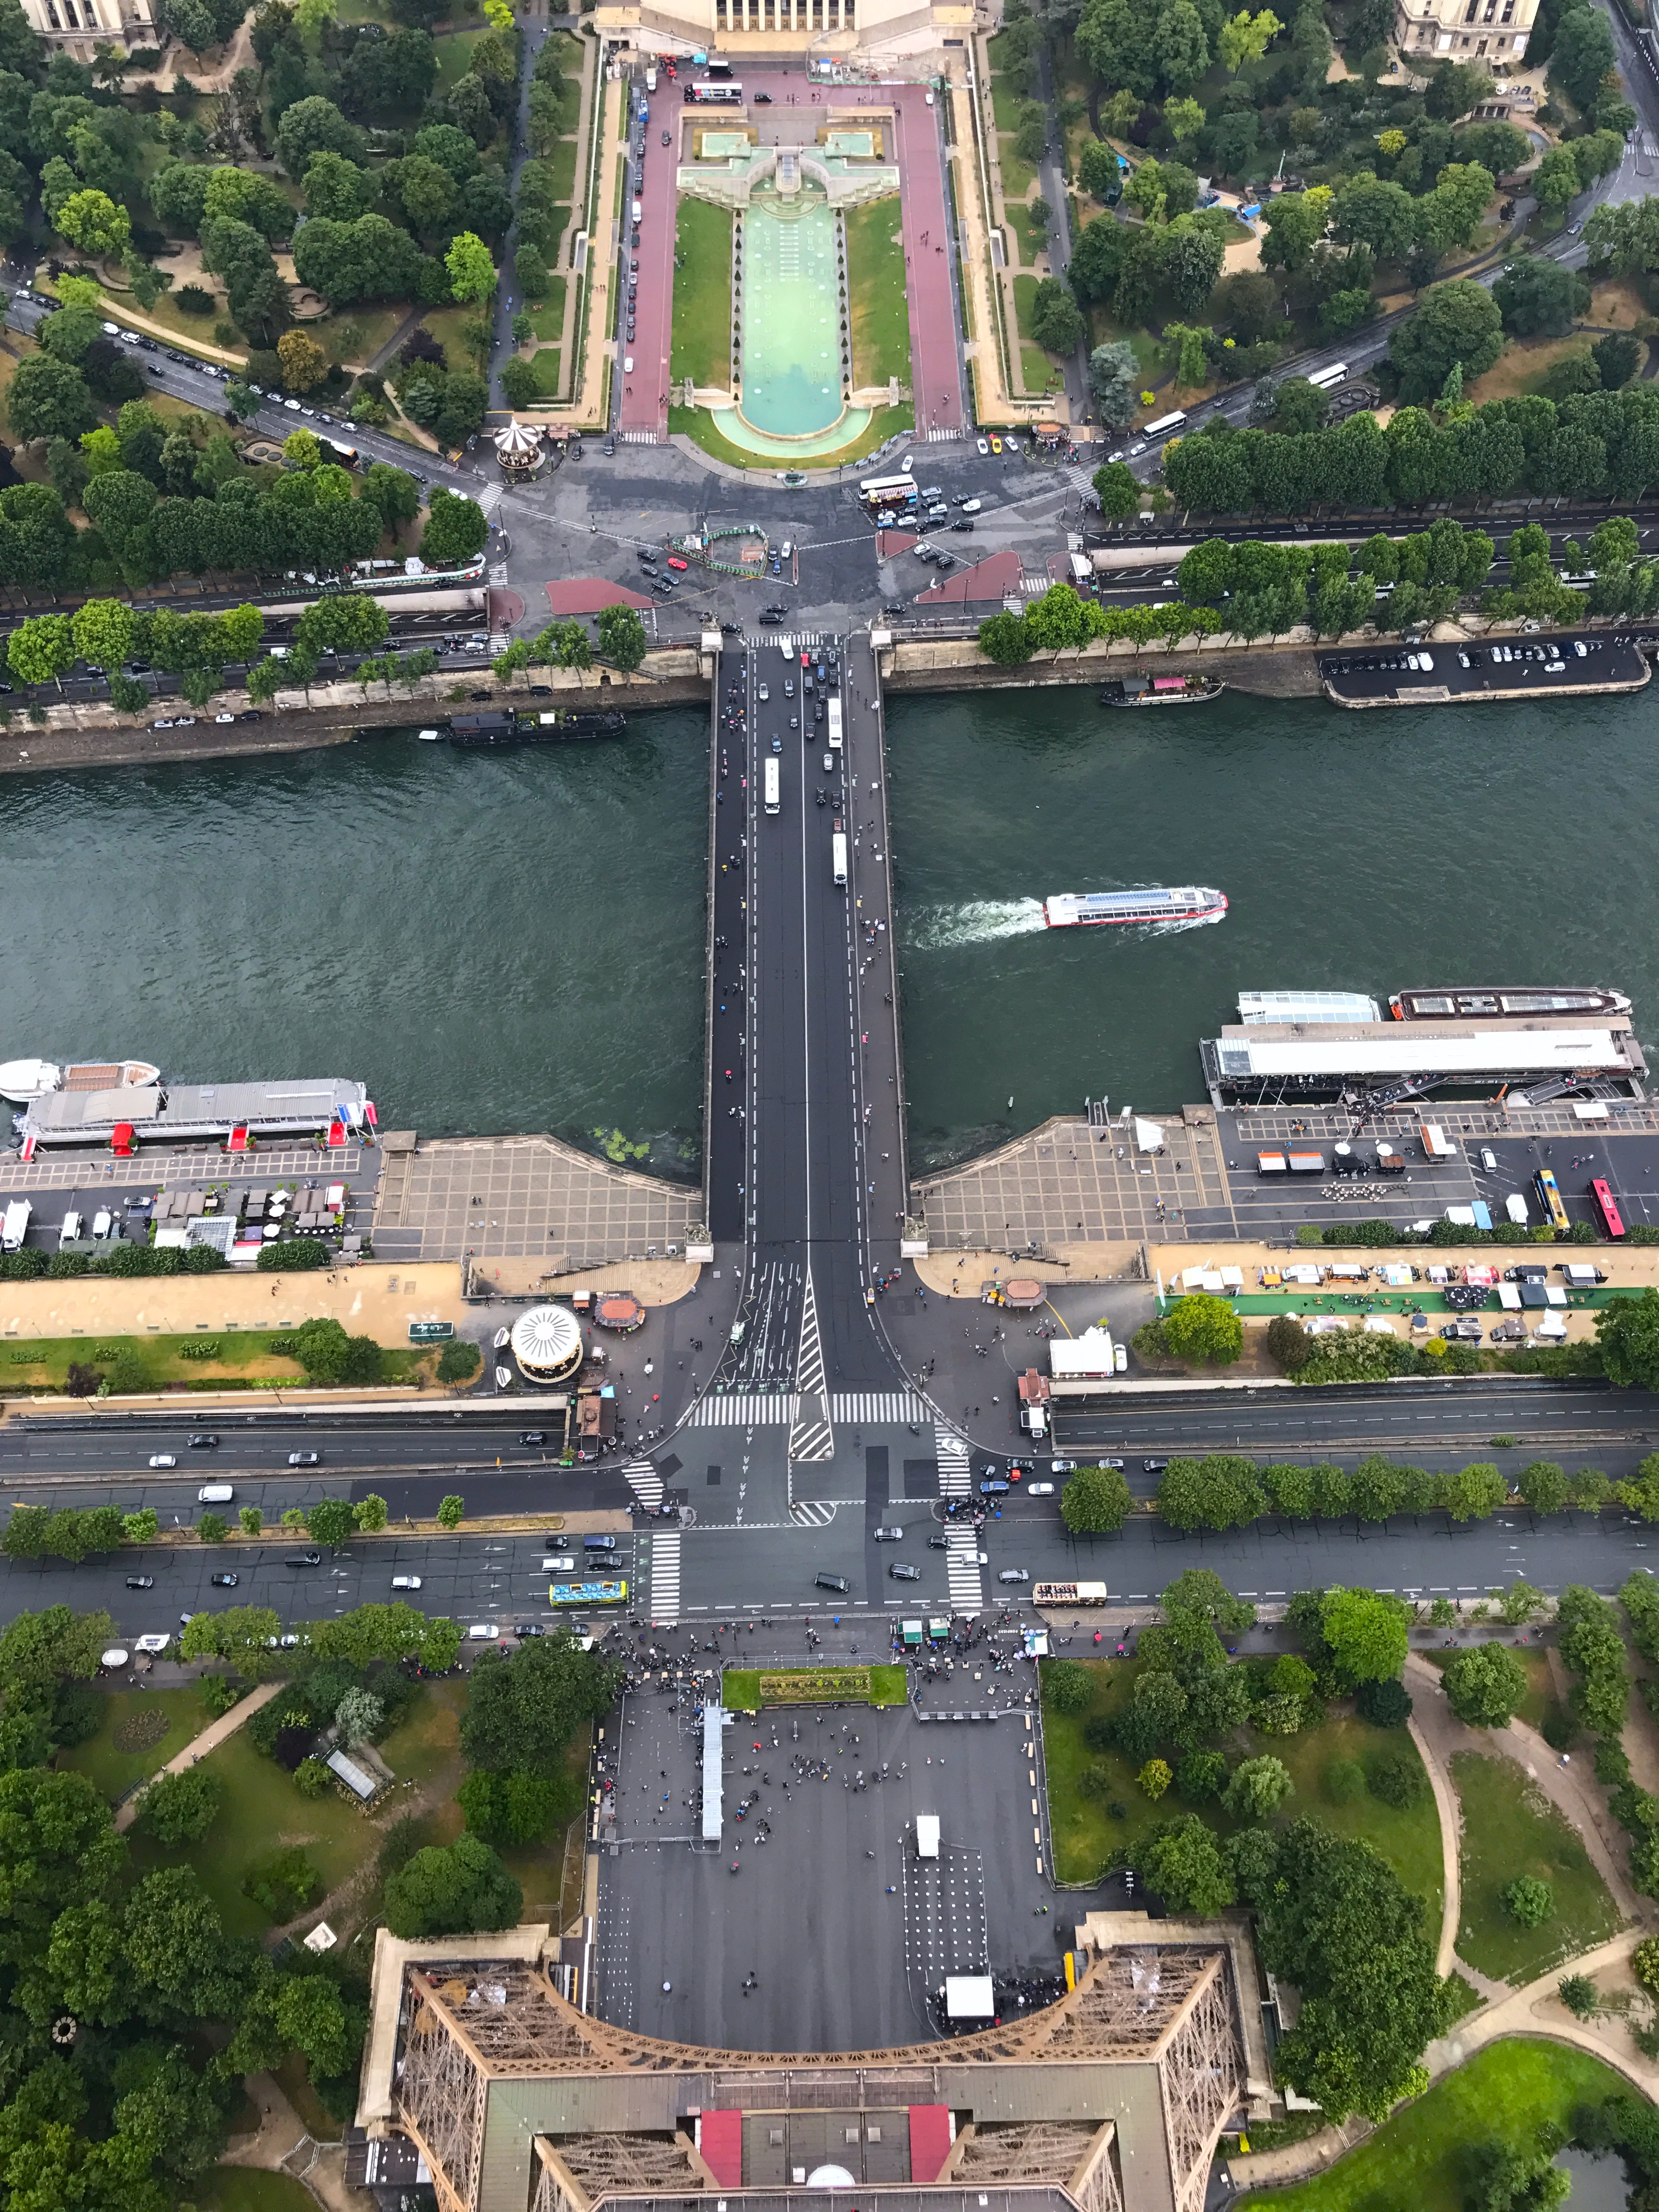 Waiting in line for the Eiffel Tower is worth the view!